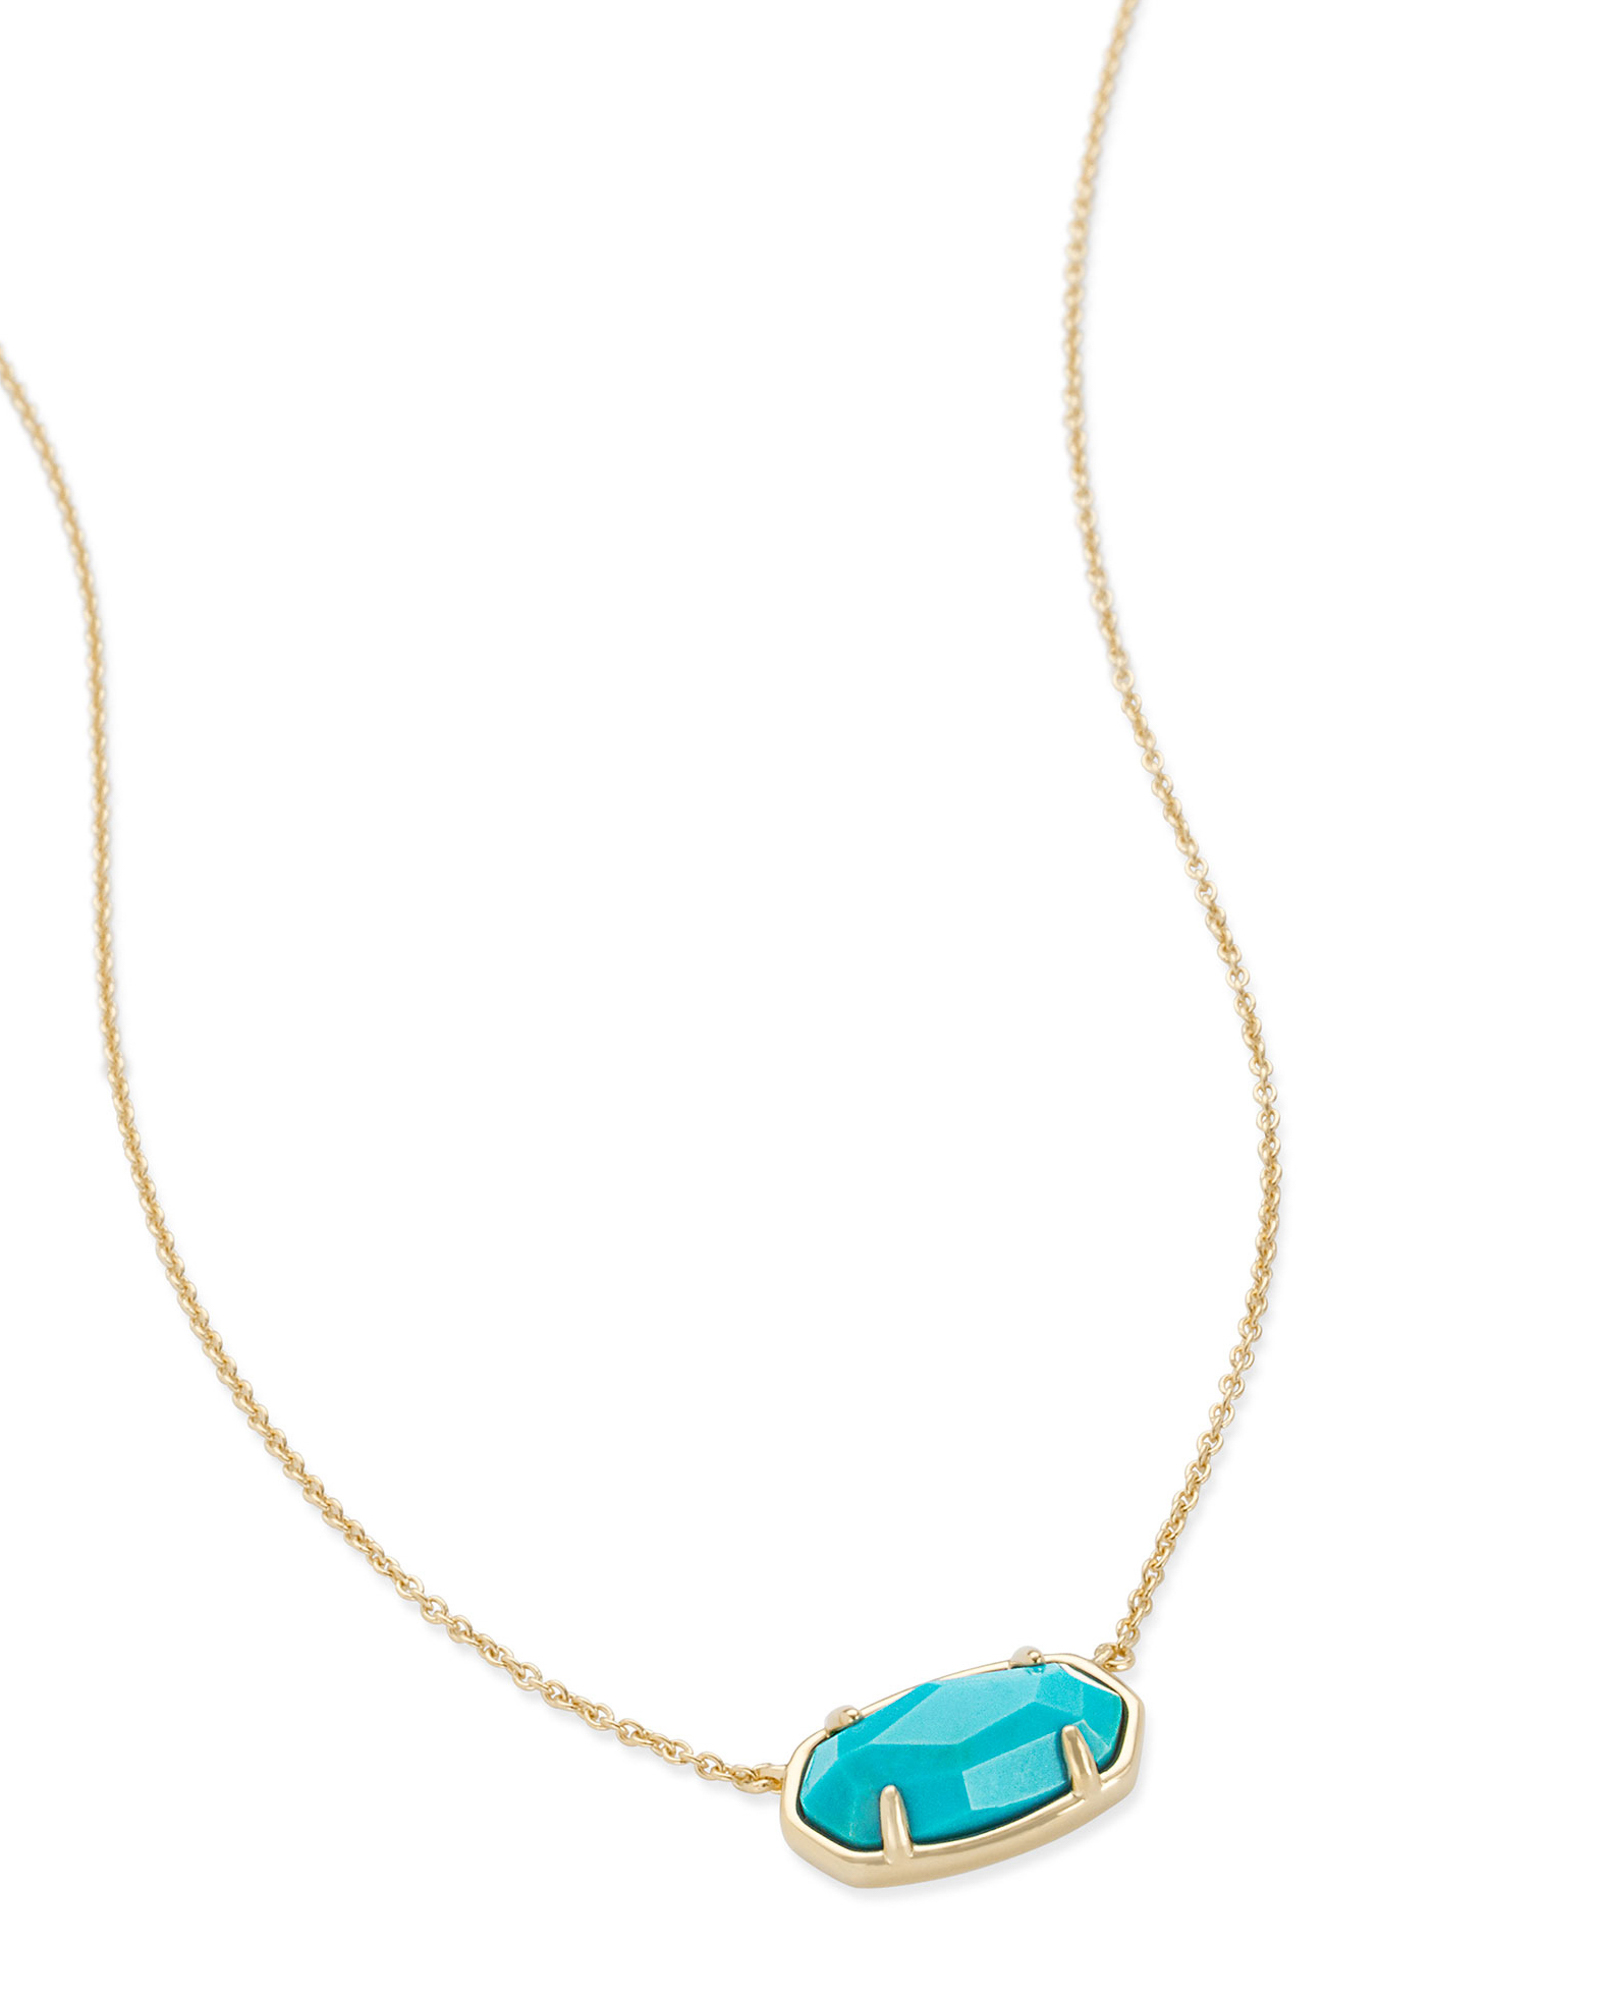 Elisa 18k Gold Vermeil Pendant Necklace in Genuine Turquoise